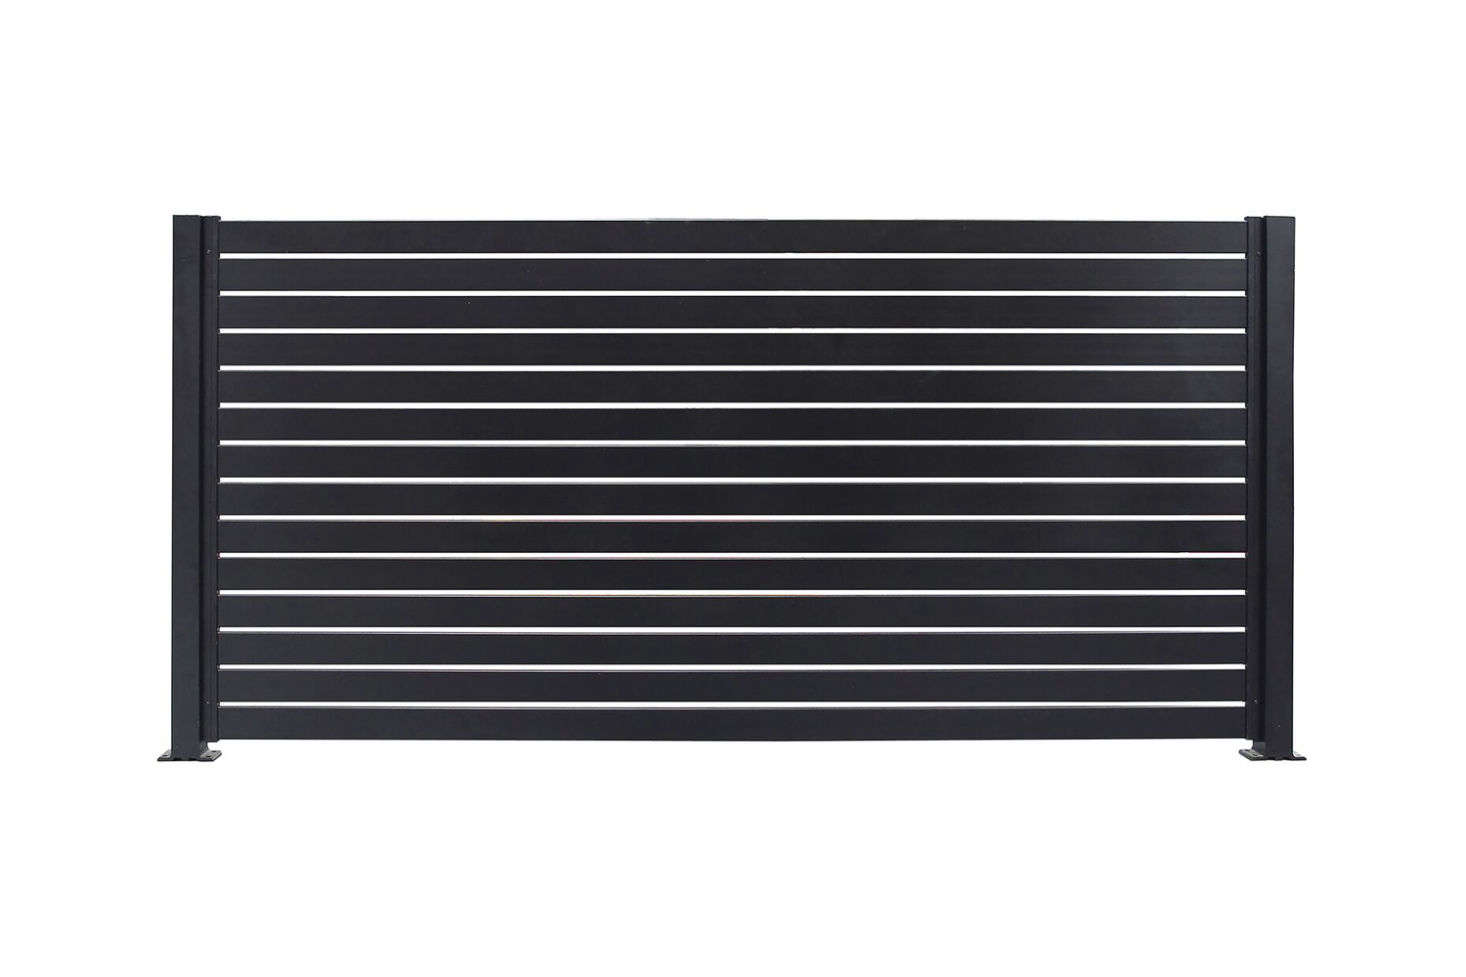 The Quick Screen Slat Fencing in black is made of easy-to-install painted aluminum; $370.99 at Walmart.